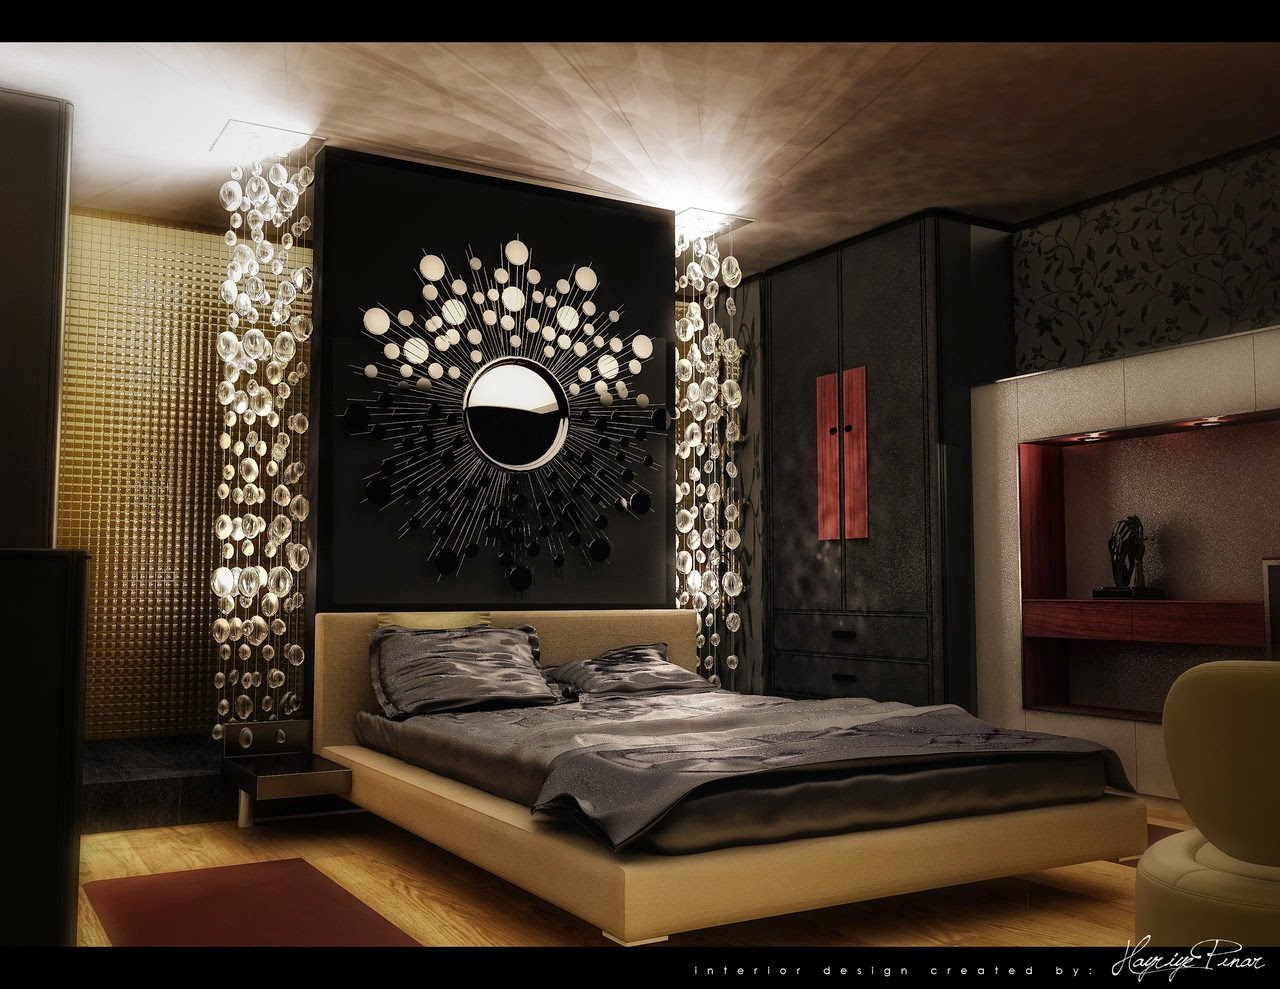 Bedroom Design Gallery Inspiration With